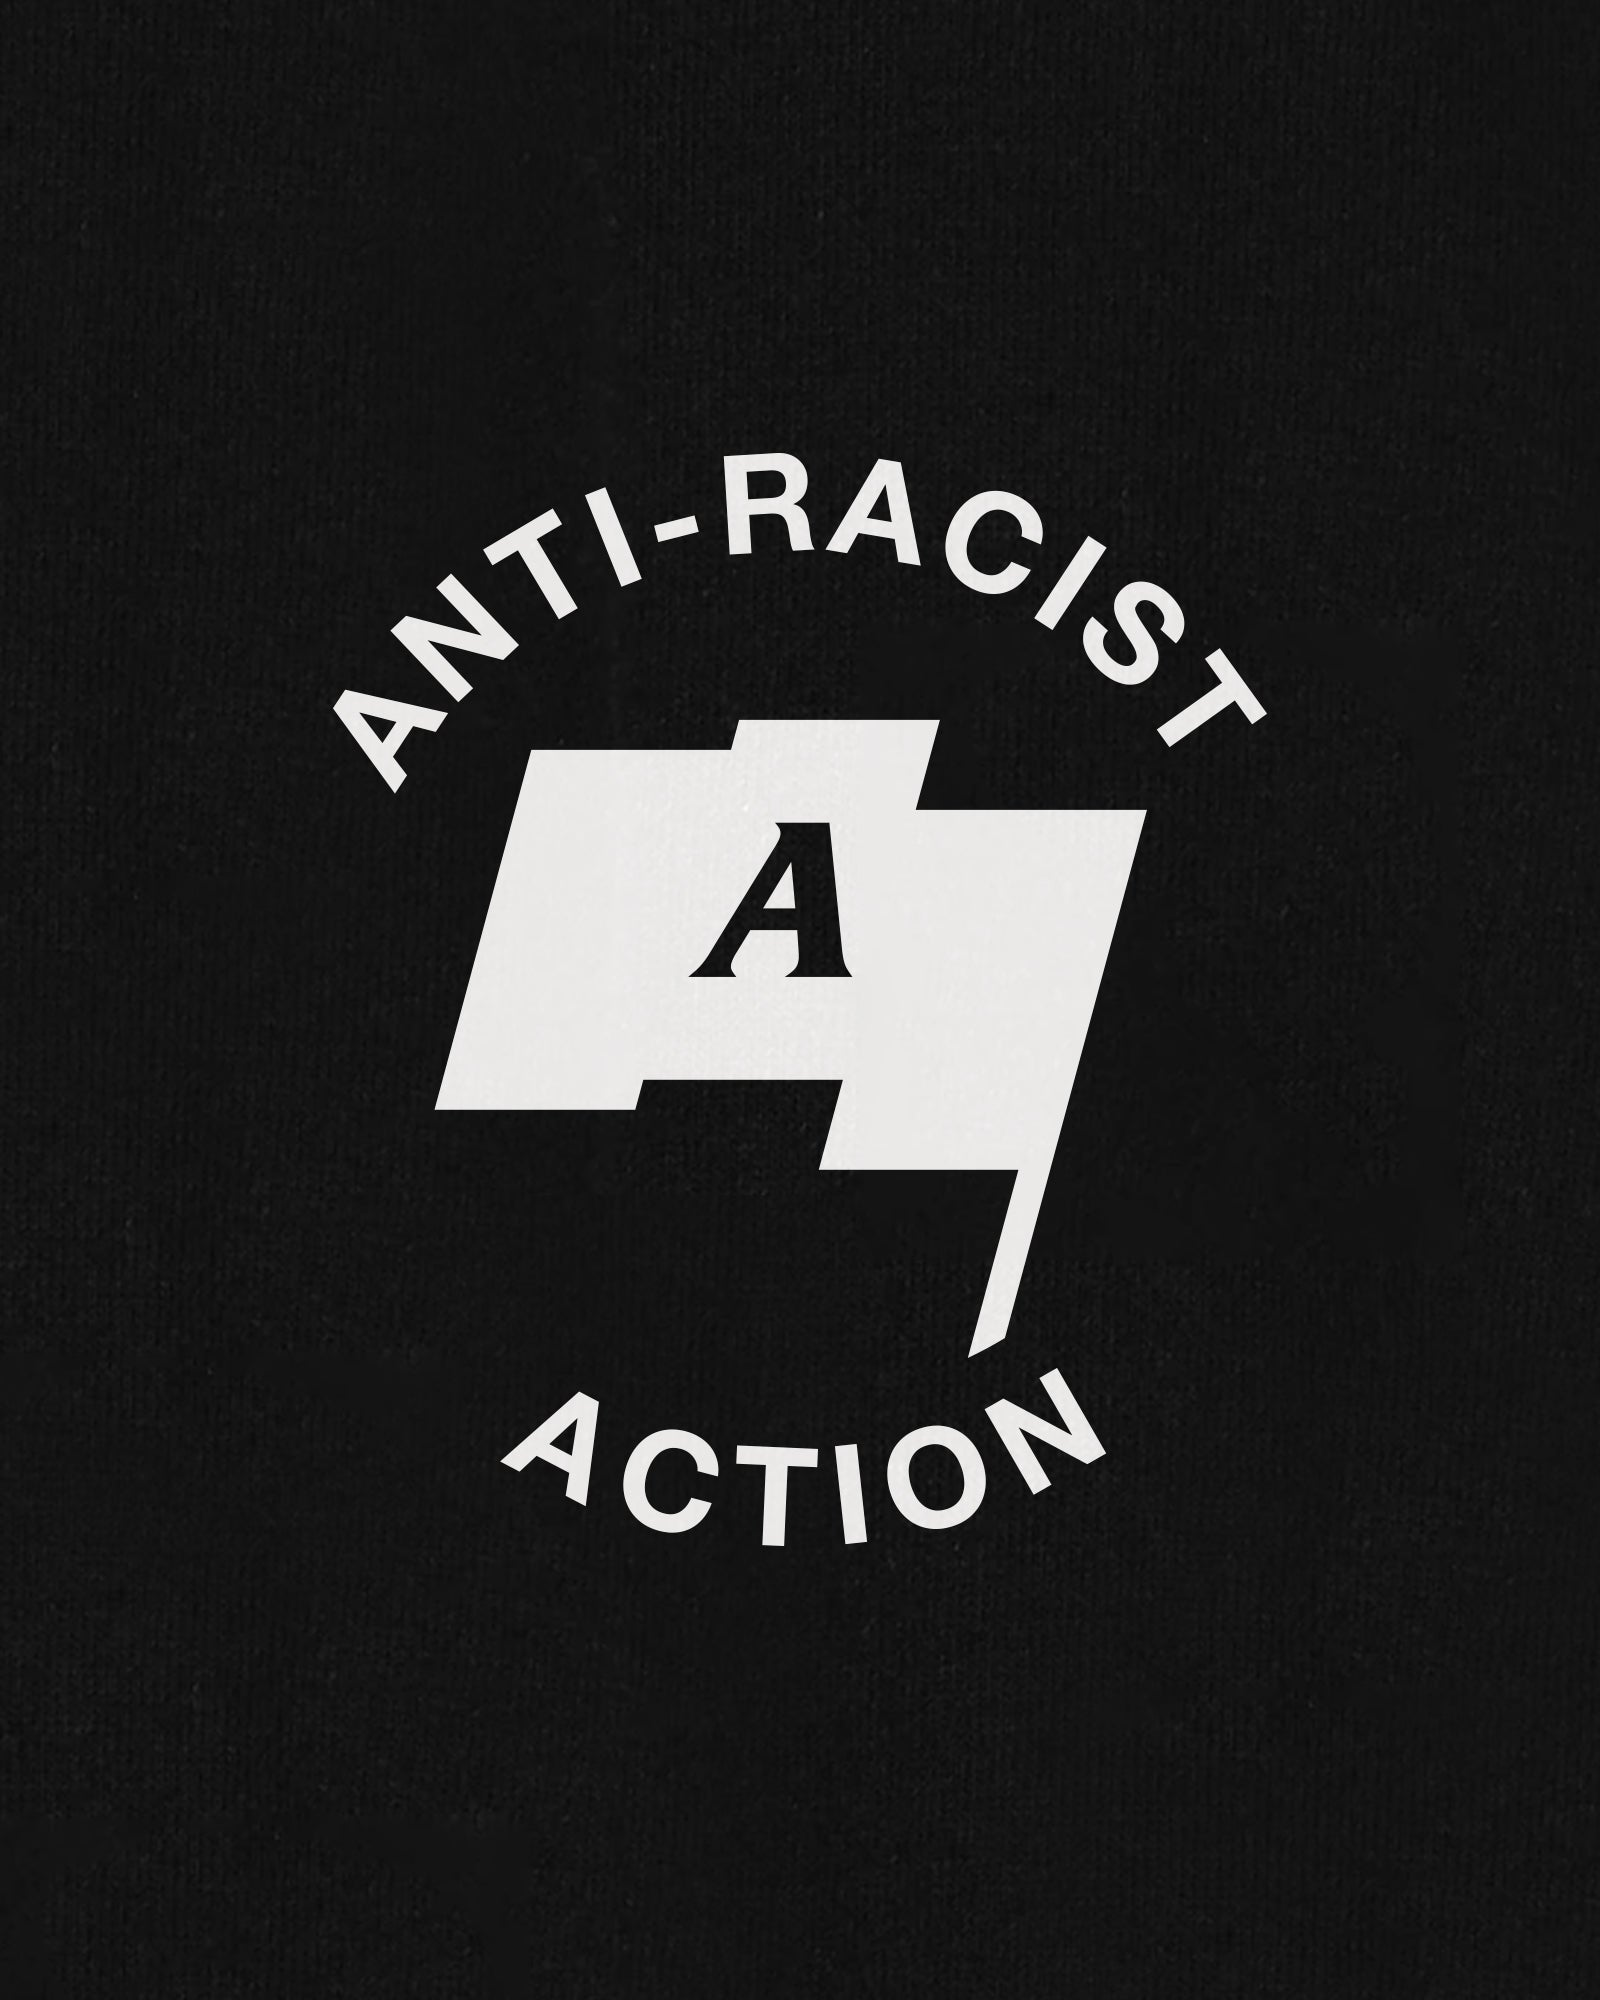 Anti-Racist Action T-Shirt